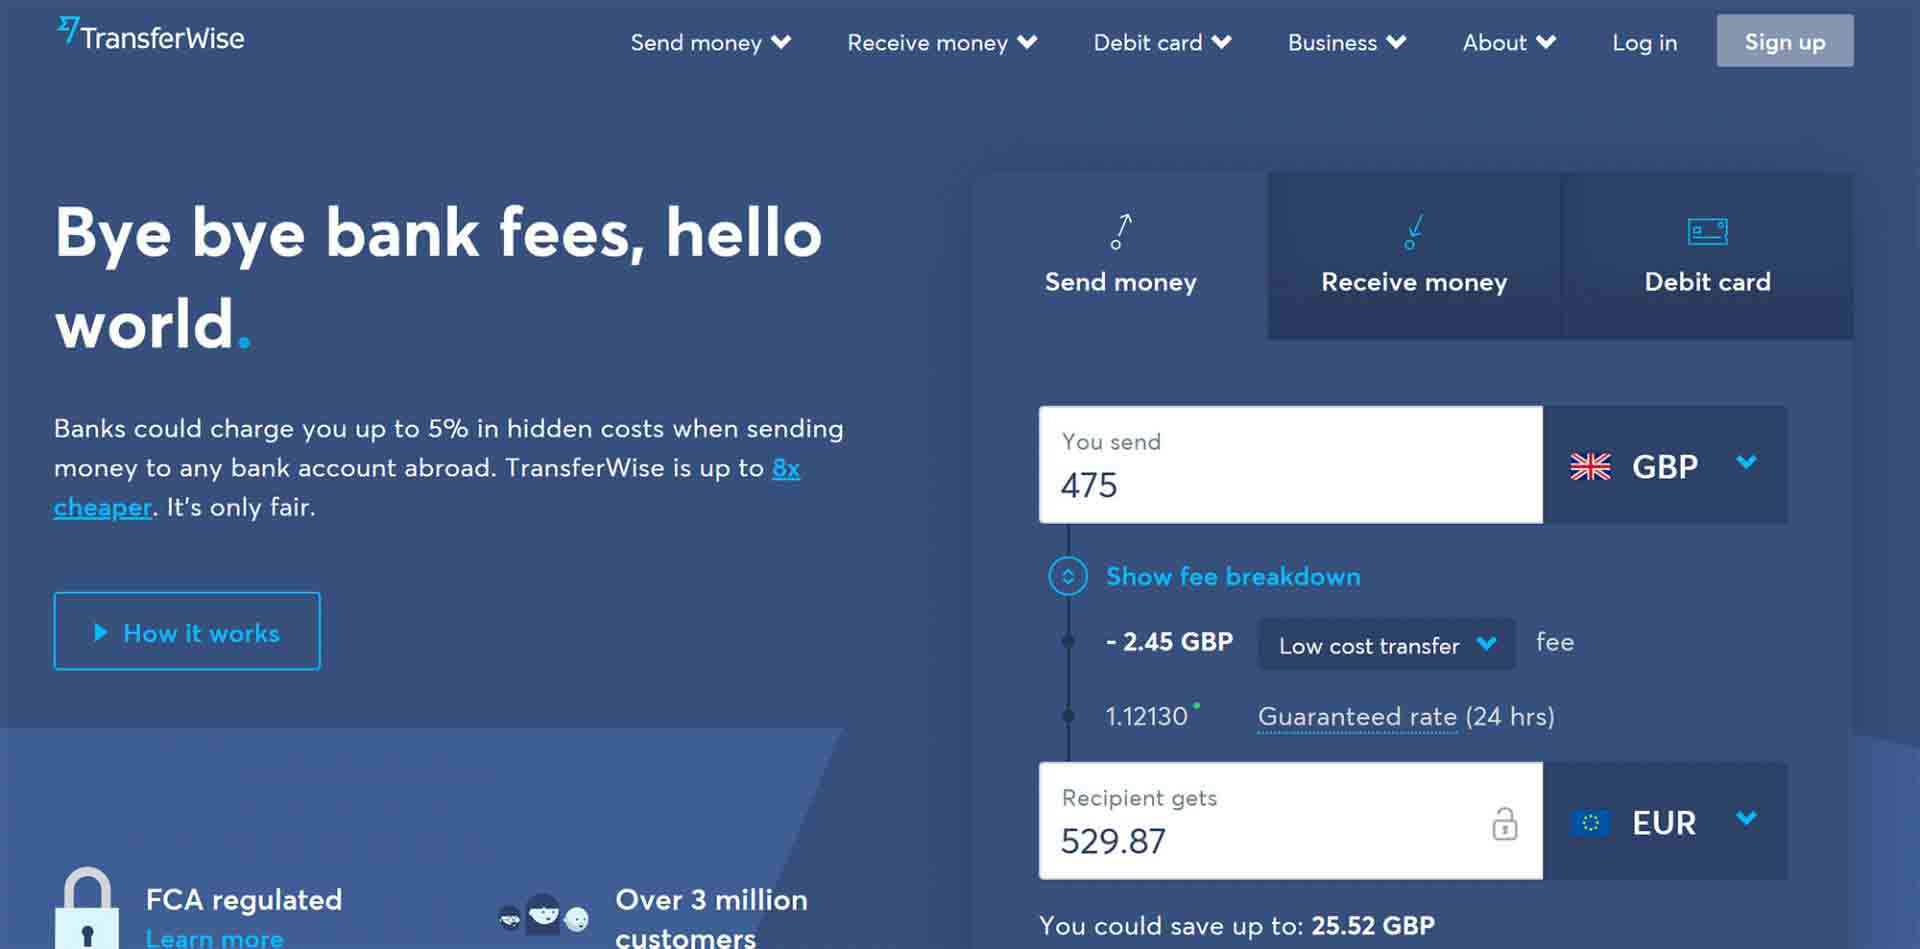 transferwise-homepage